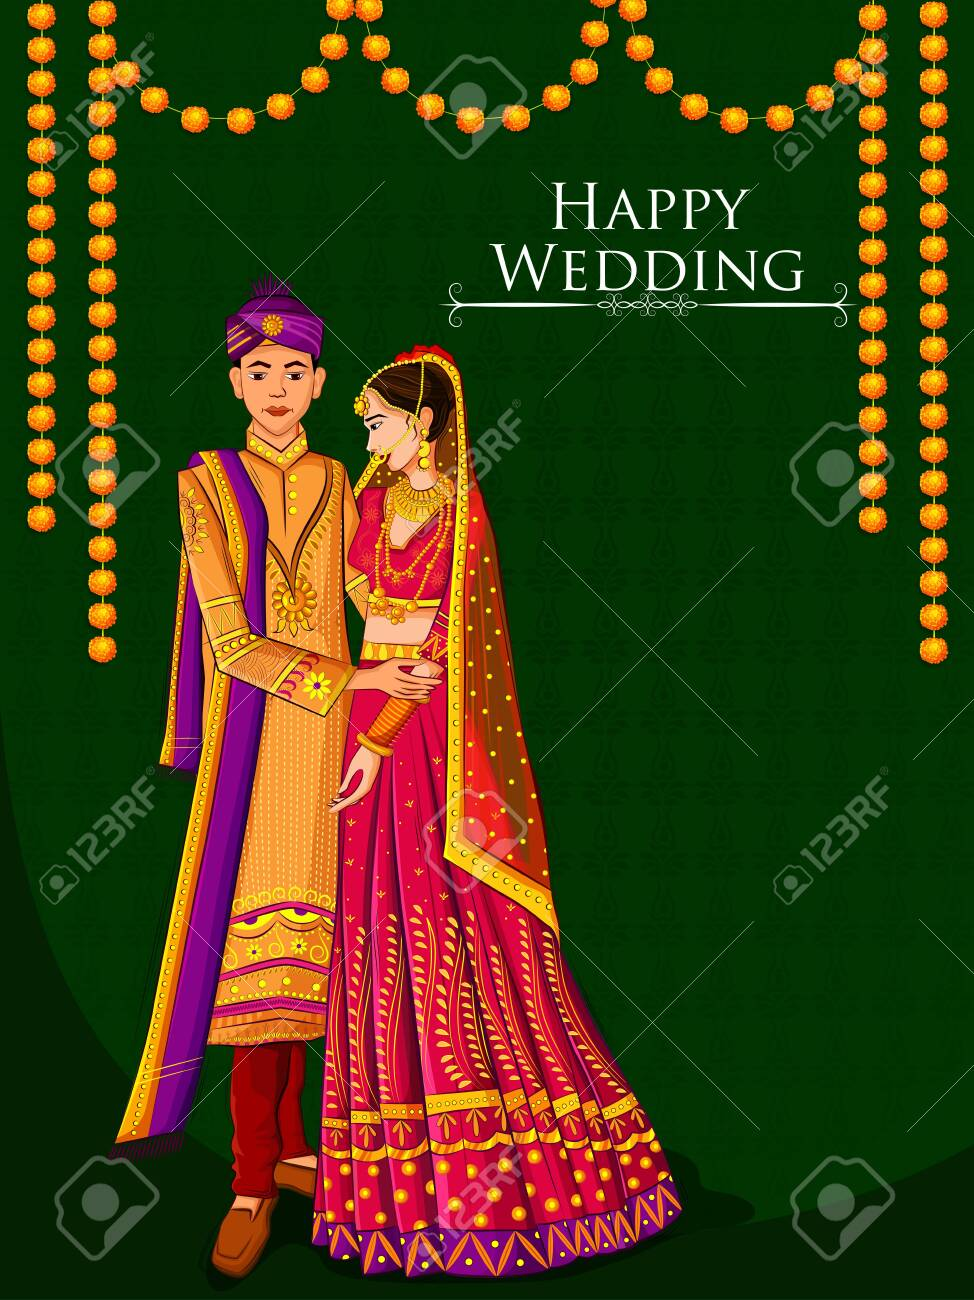 Indian Bride and Groom in ethnic dress Lengha and Serwani for wedding Day. Vector illustration - 128636576